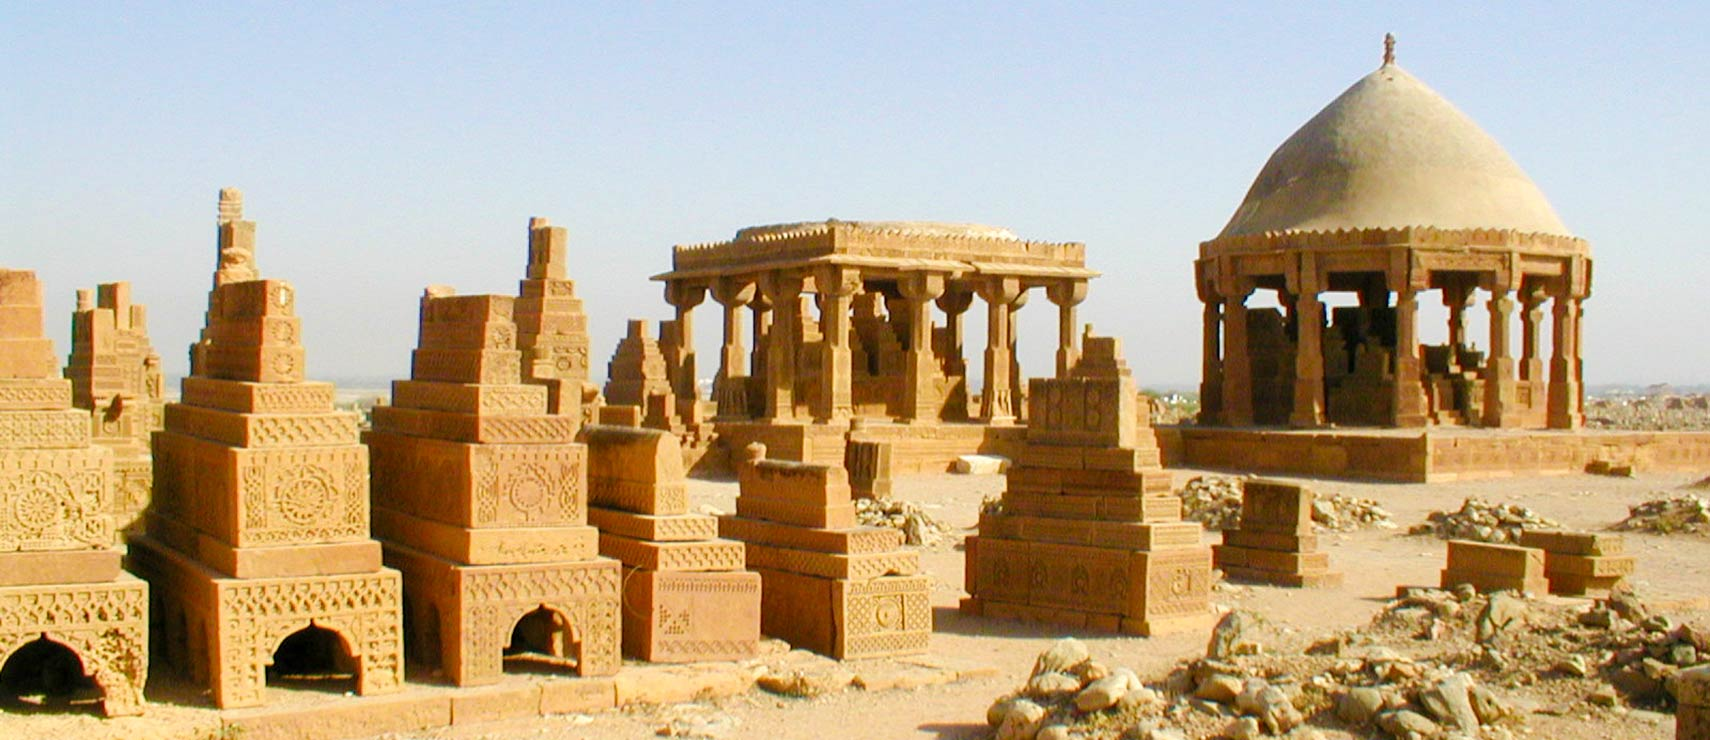 Chaukhandi tombs in Sindh province, Pakistan